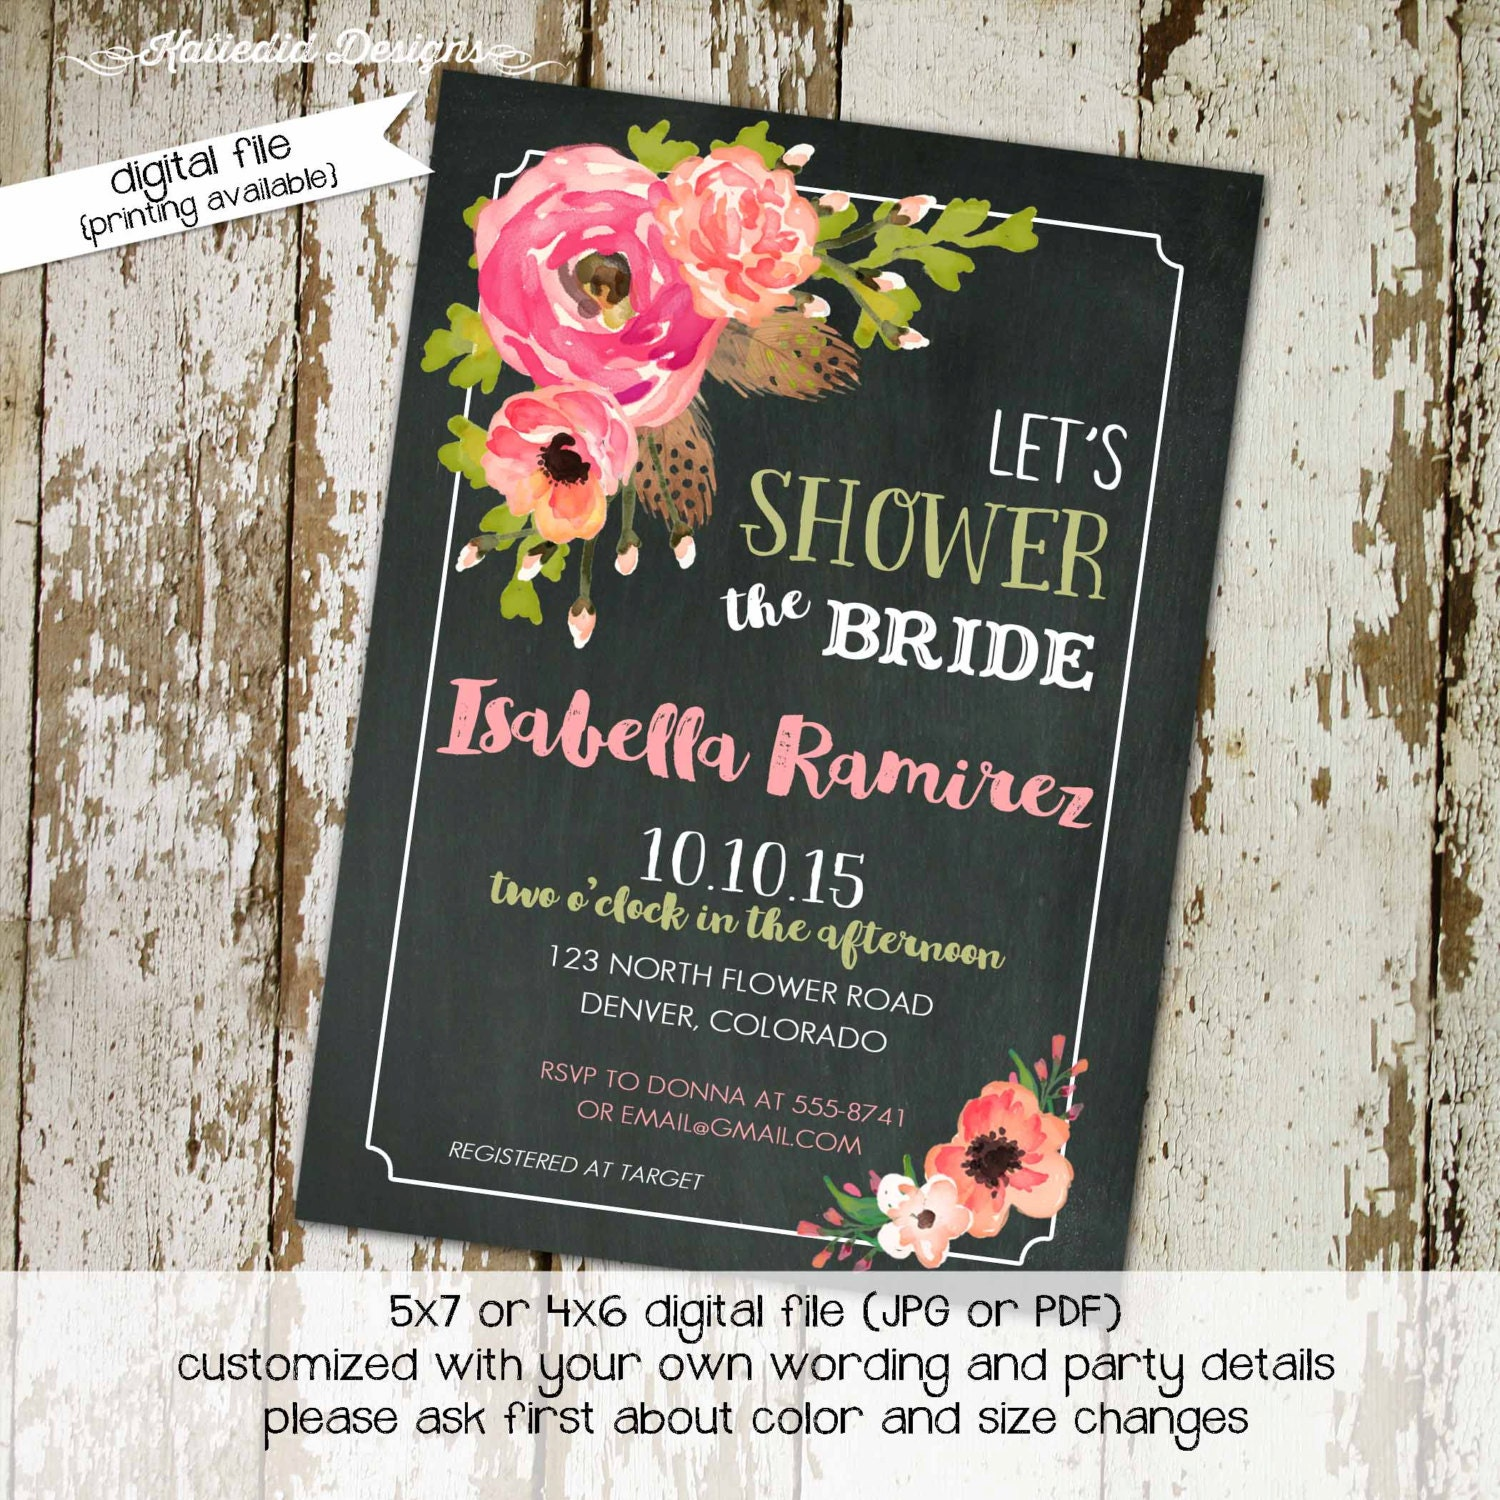 floral bridal shower rustic chic feathers evite baby girl shower invitation floral chalkboard wedding baptism item 320 shabby invitations